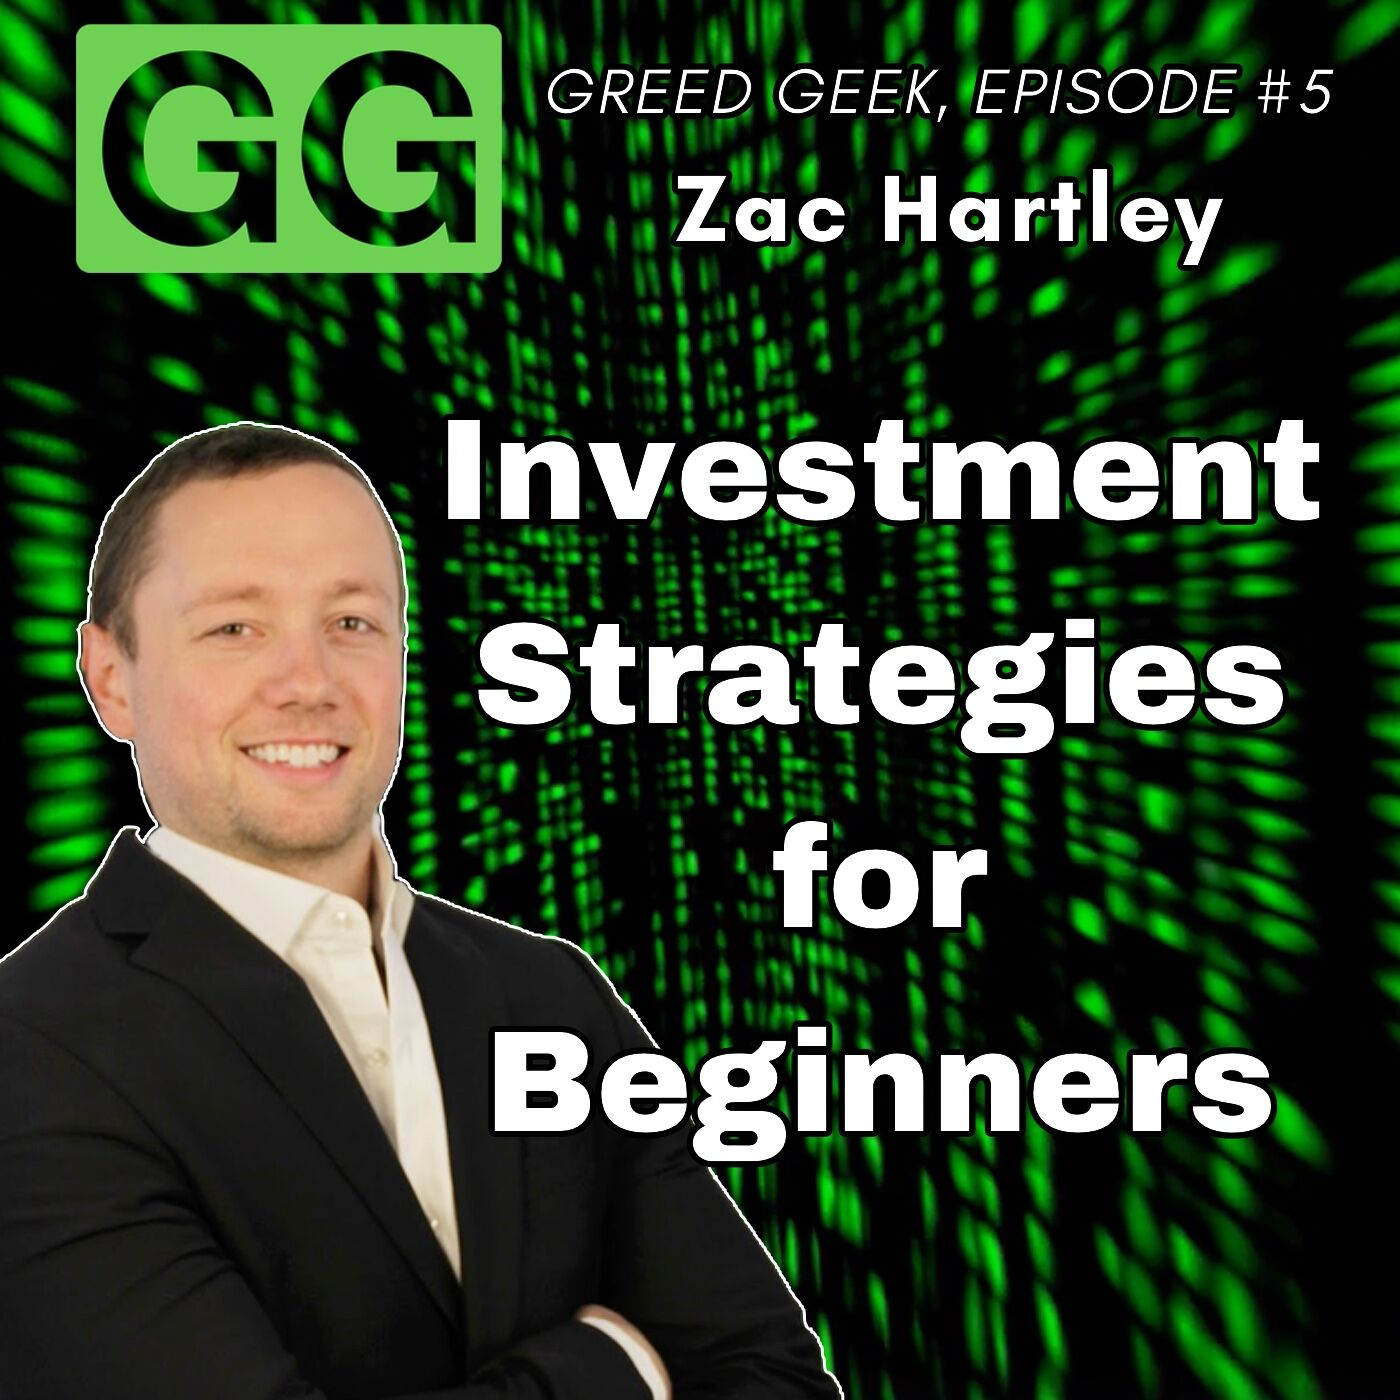 #5 - Zac Hartley: Investment Strategies for Beginners